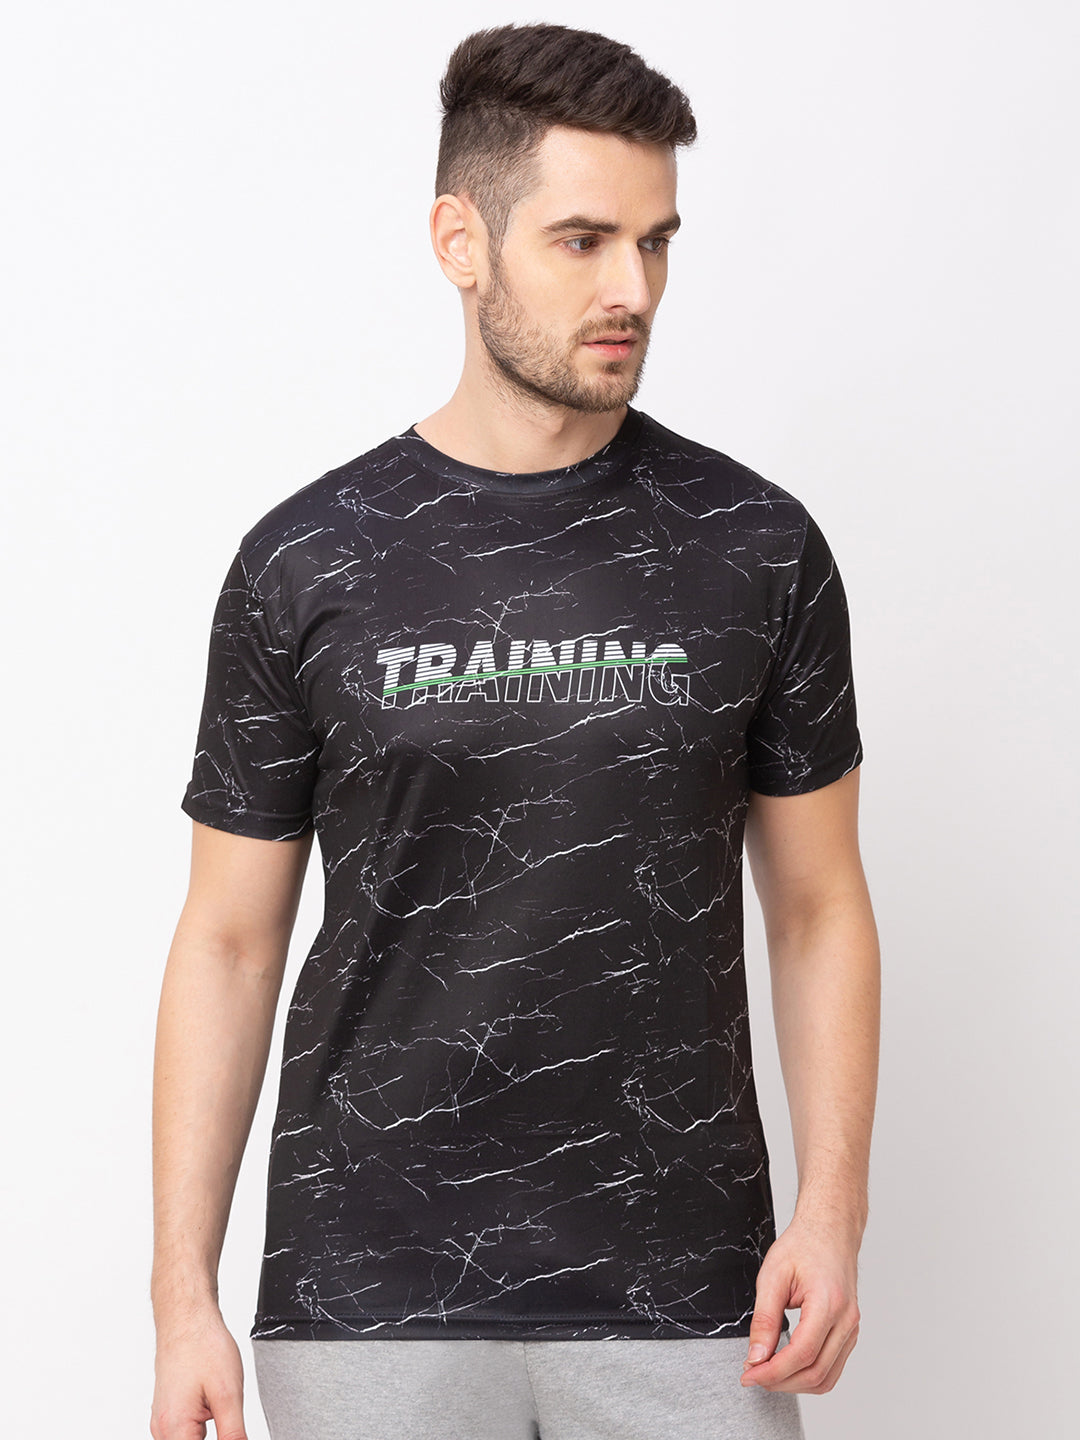 Globus Black Printed T-Shirt-1